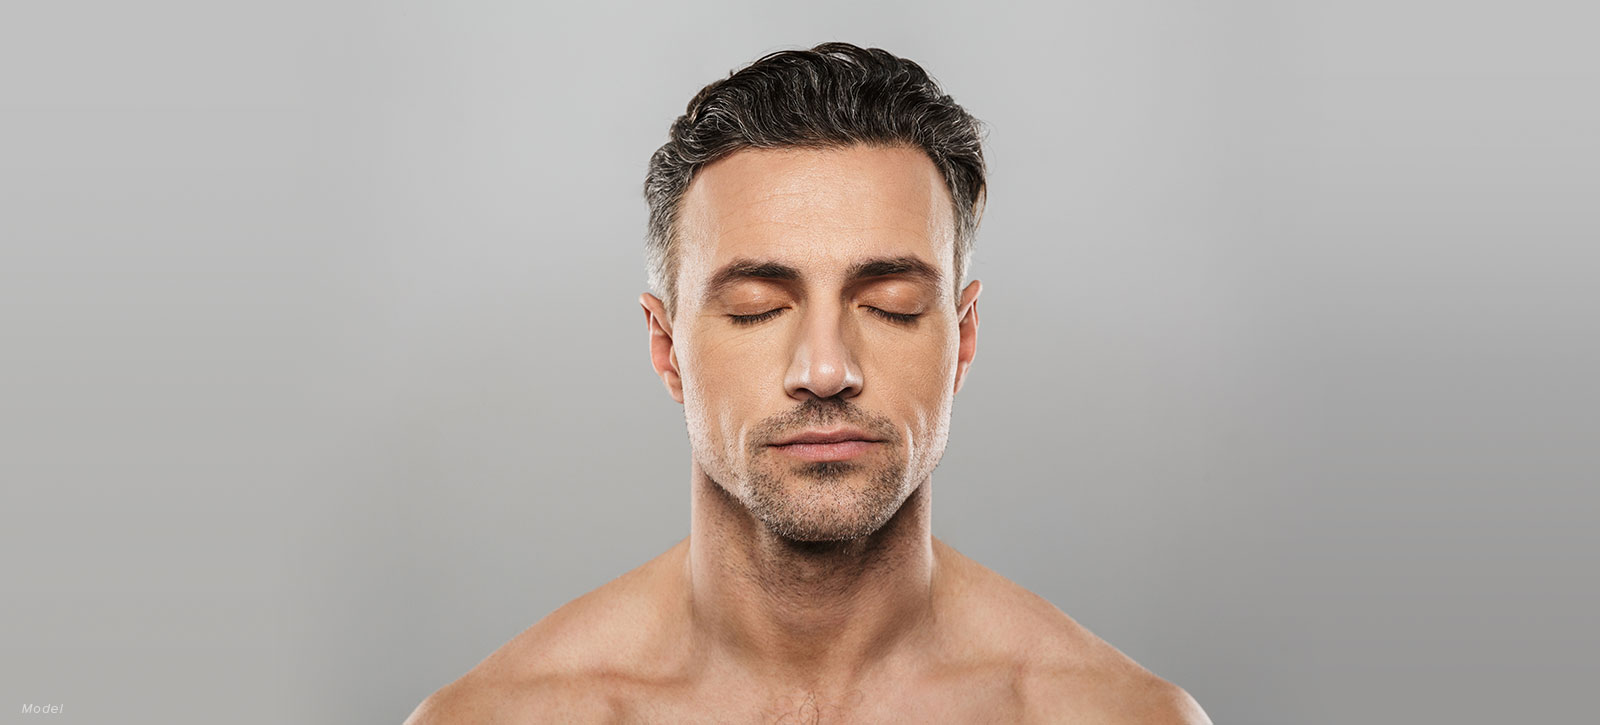 Man with his eyes closed